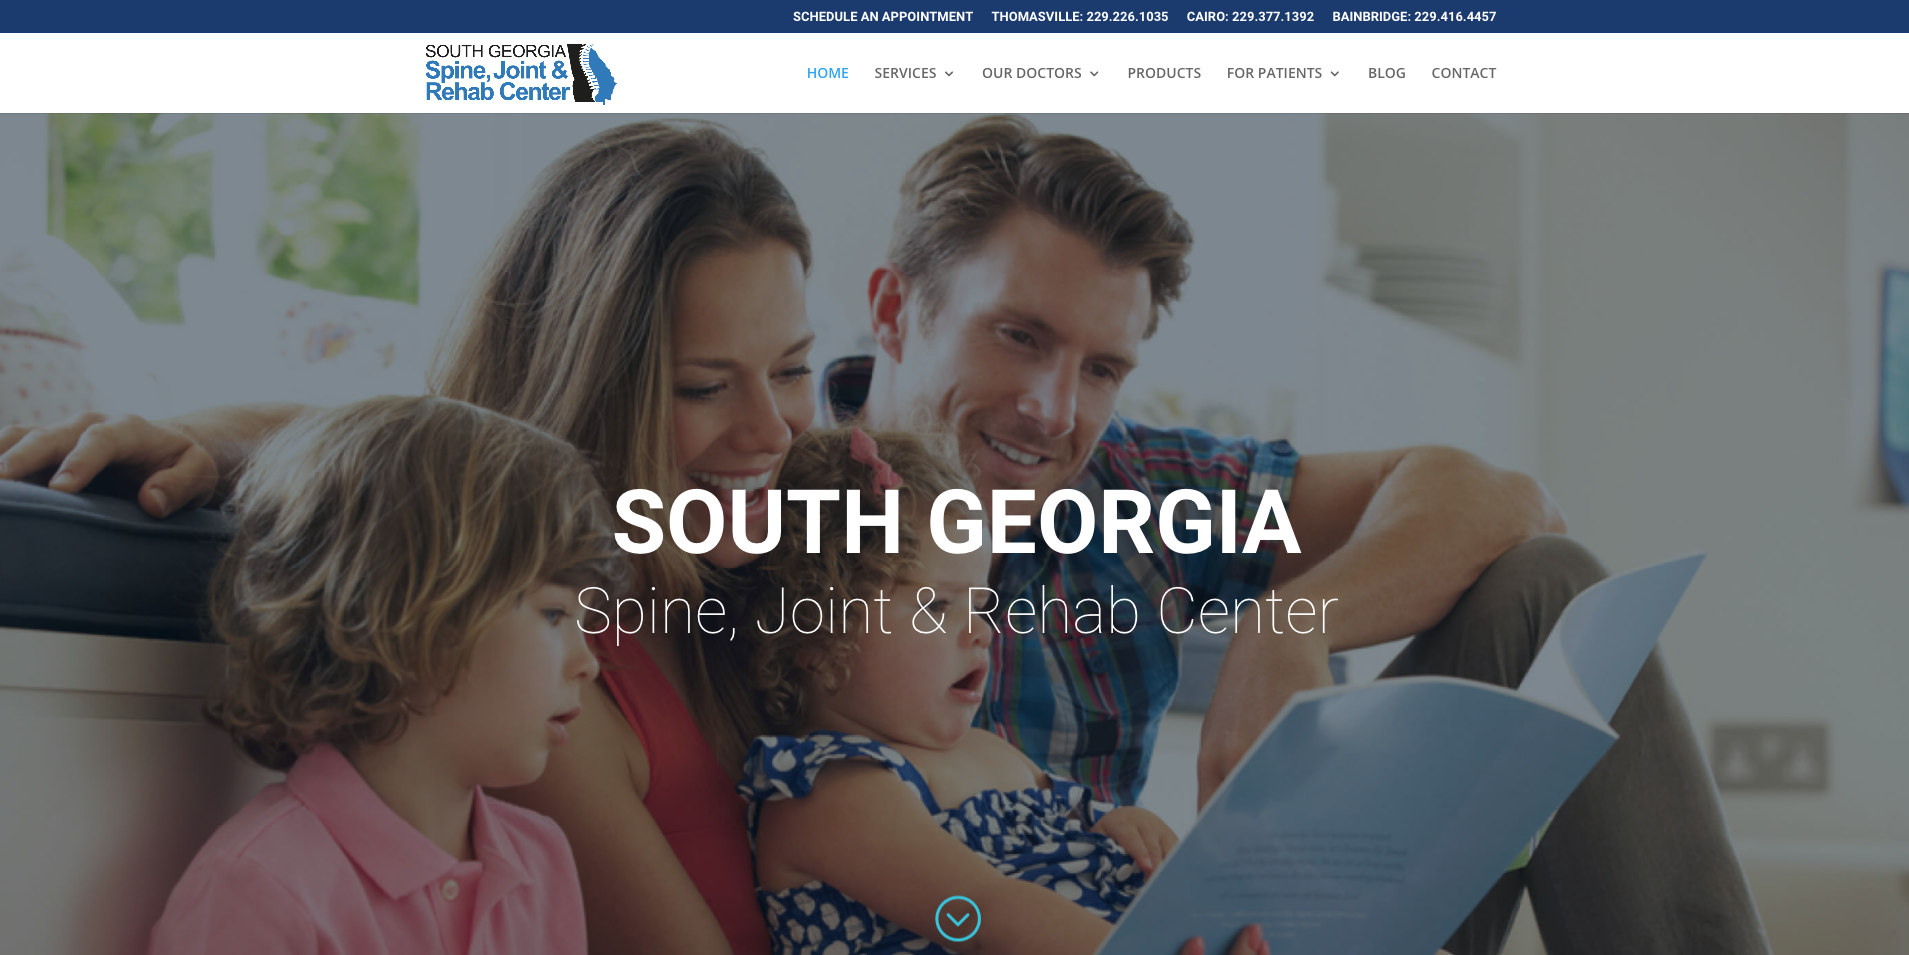 South Ga Spine, Joint